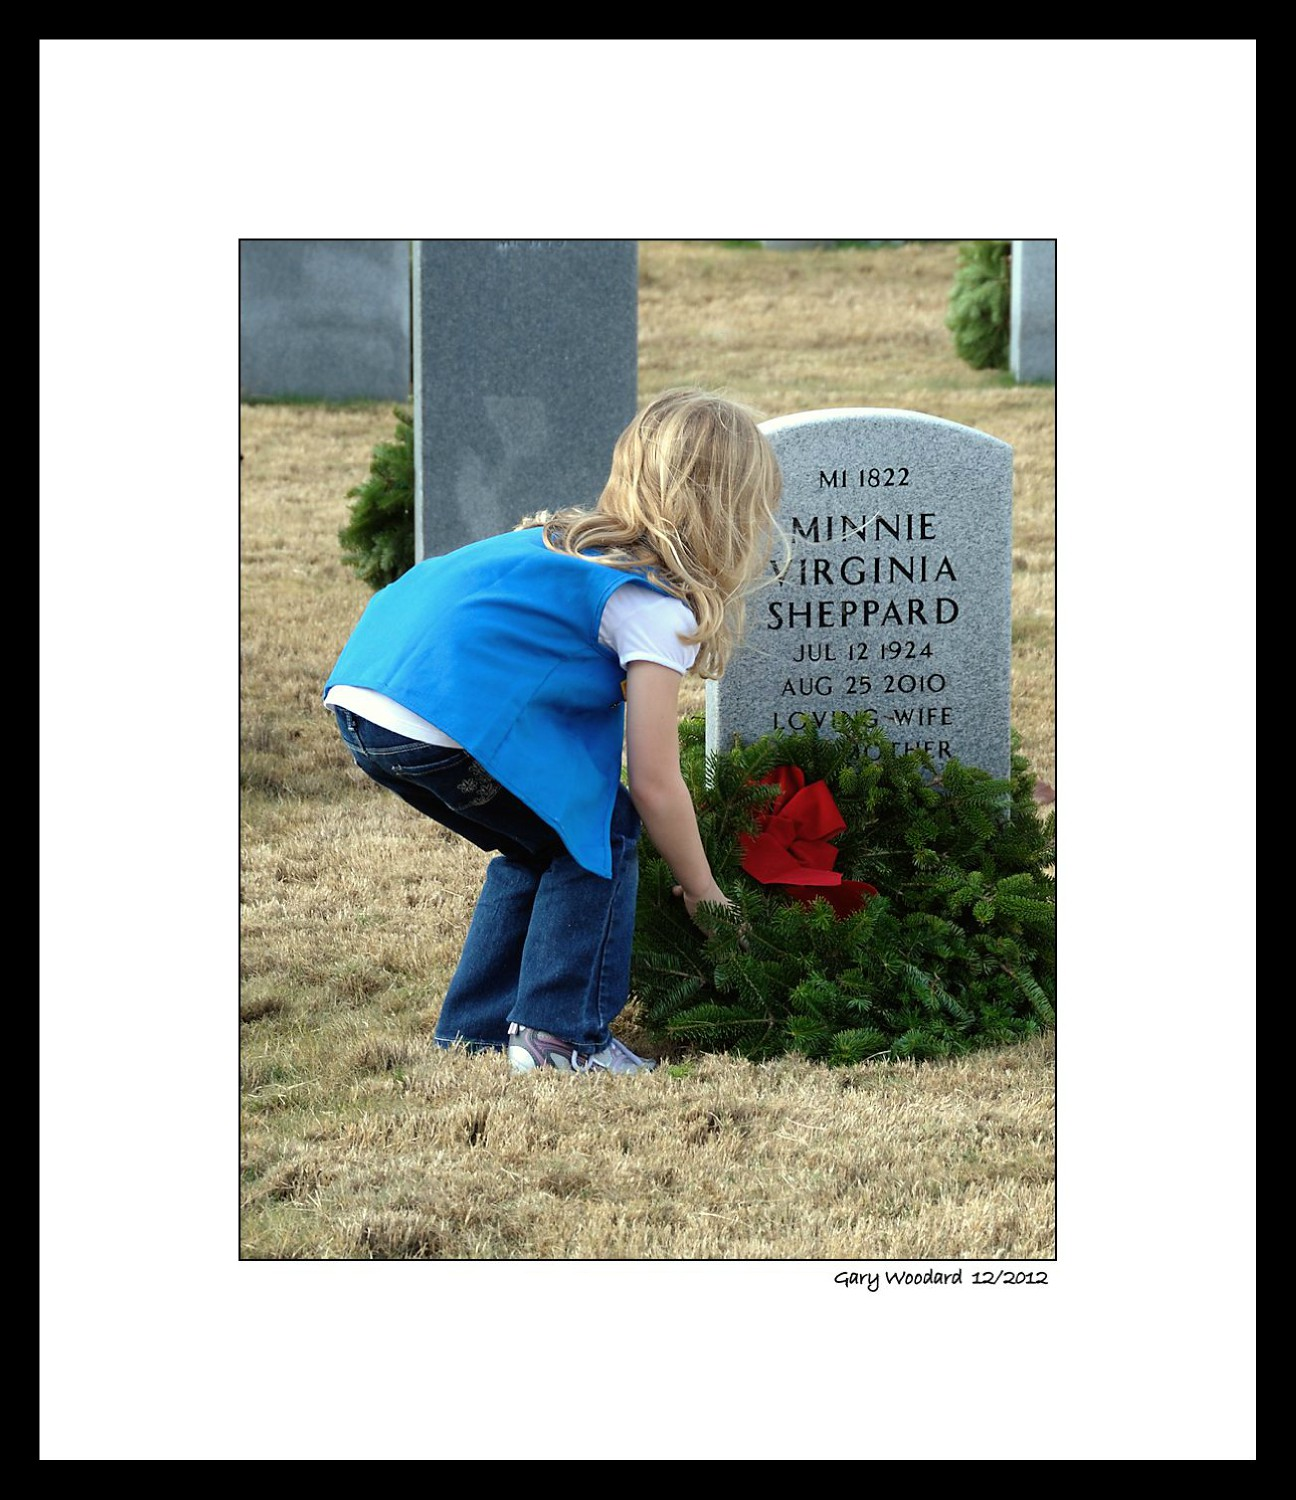 wreaths across america author woodard gary